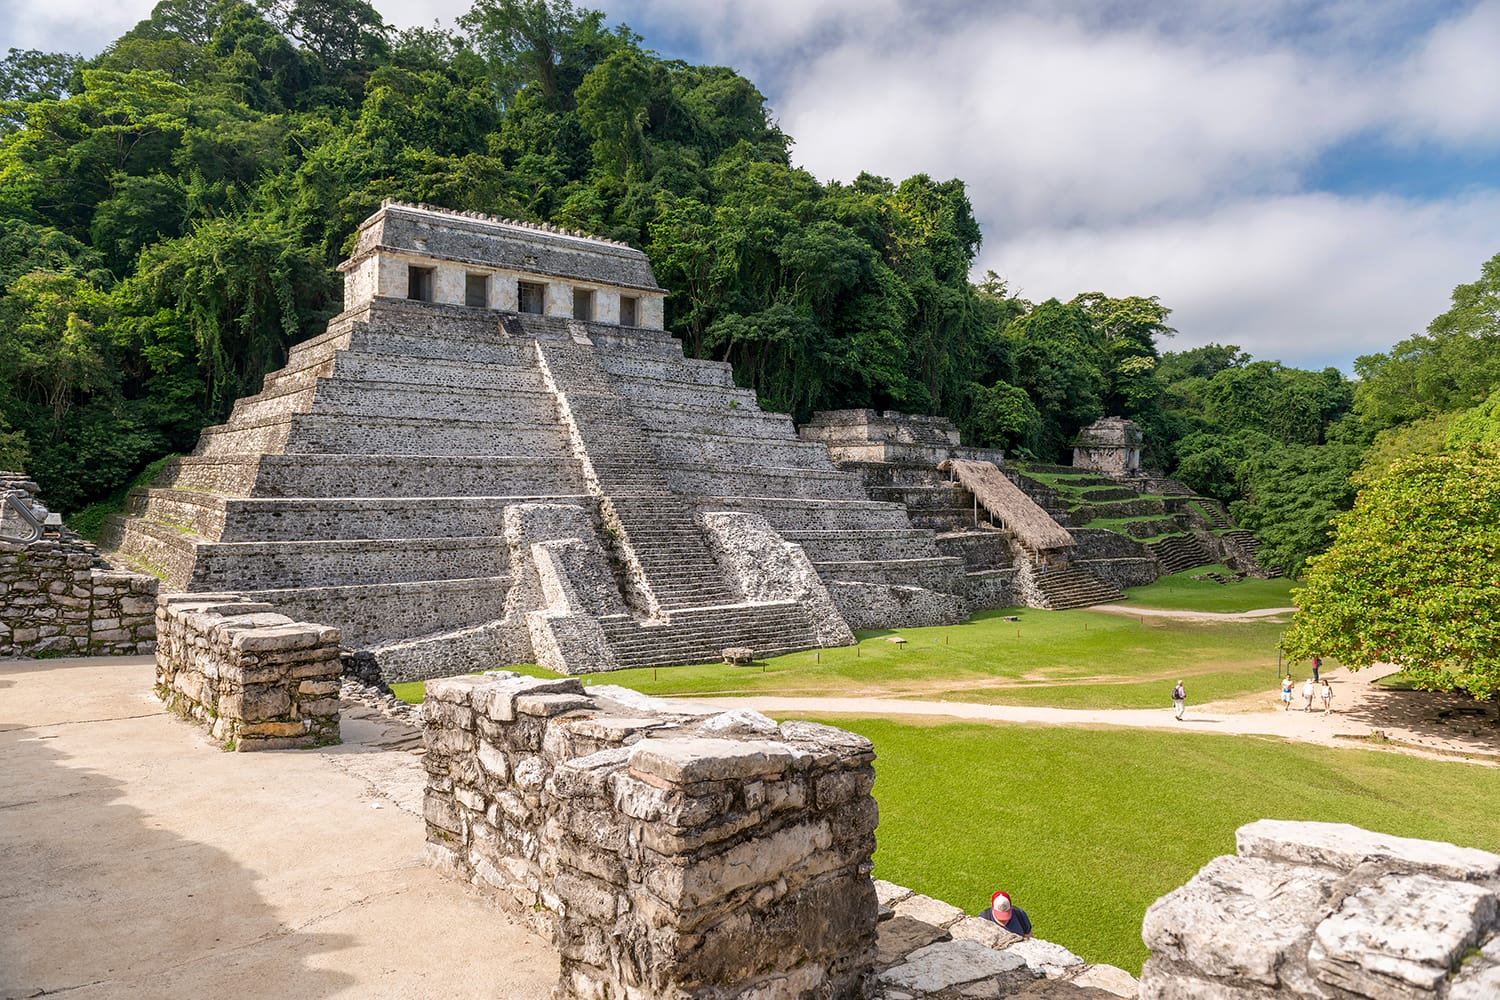 Unidentified people in the mayan temple ruins surrounded by dense jungle in Palenque Mexico